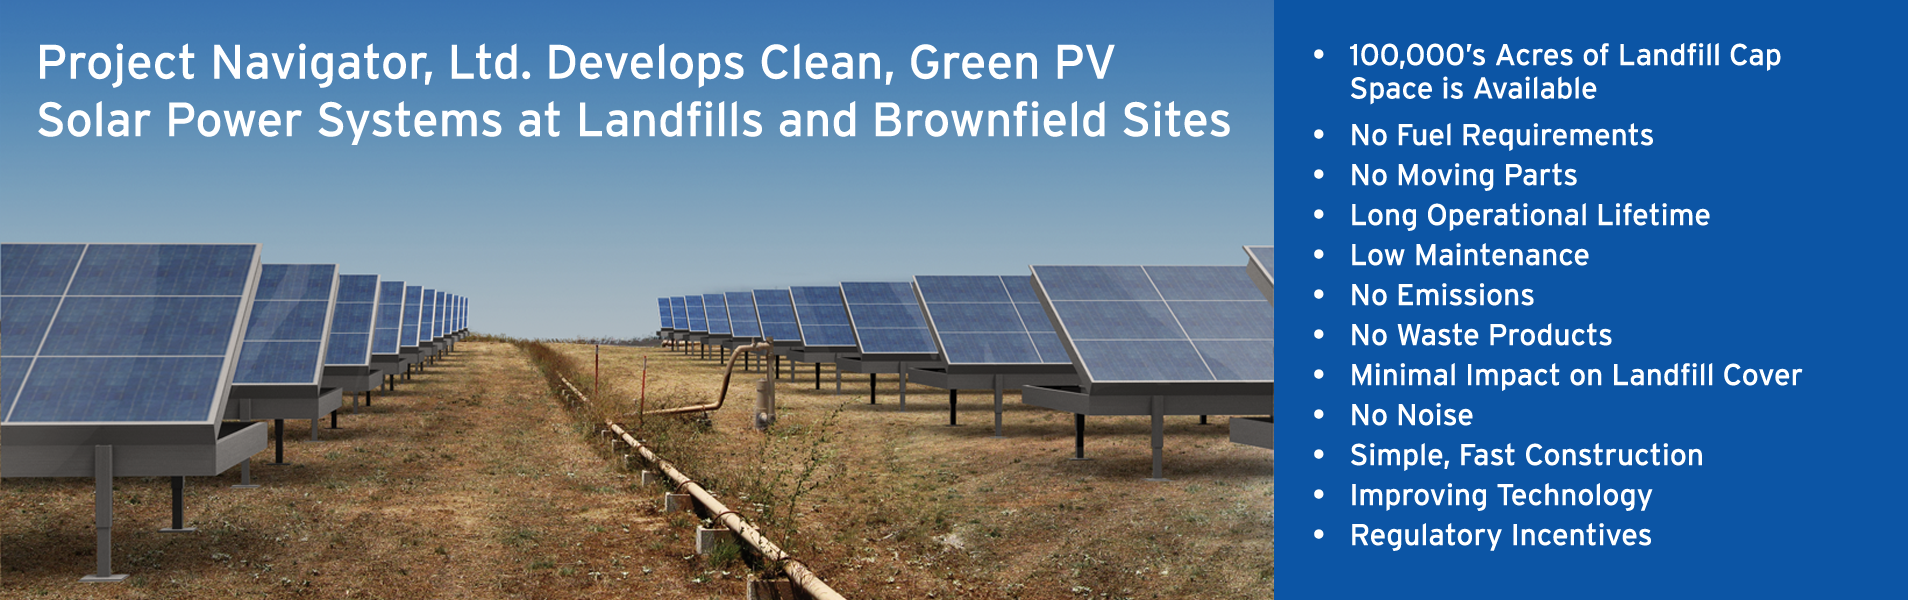 Project Navigator, Ltd. Develops Clean, Green PV Solar Power Systems at Landfills and Brownfield Sites